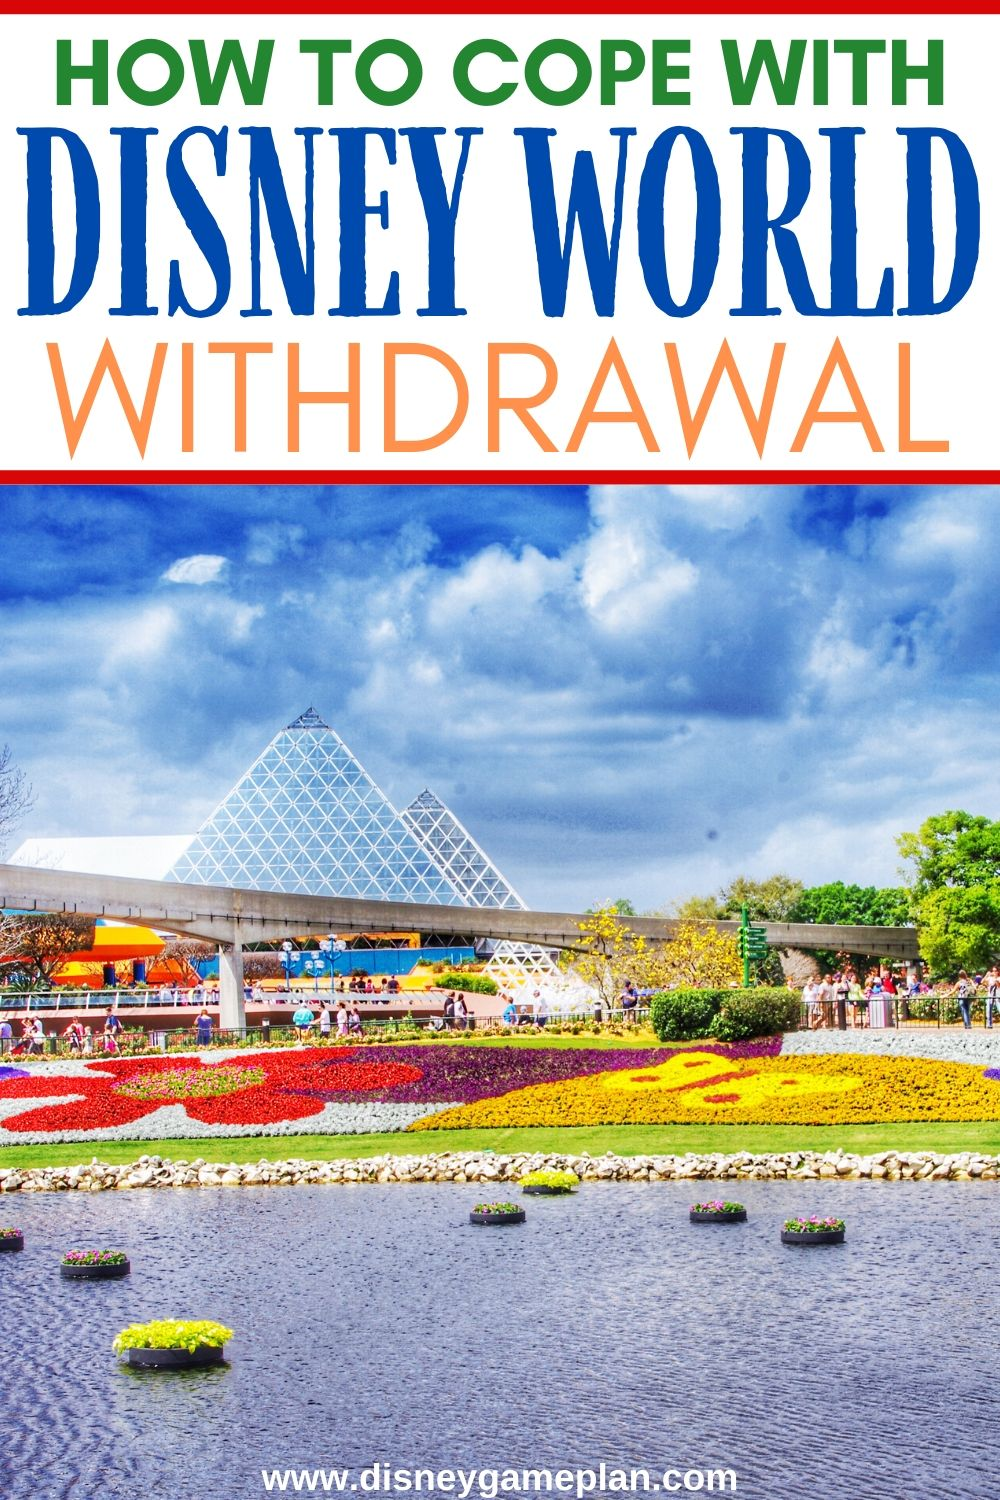 Walt Disney World Withdrawal is the real deal. Leaving Disney World is never easy. Here are some ways to cope with post-Disney depression. #disneyworld #disneytips